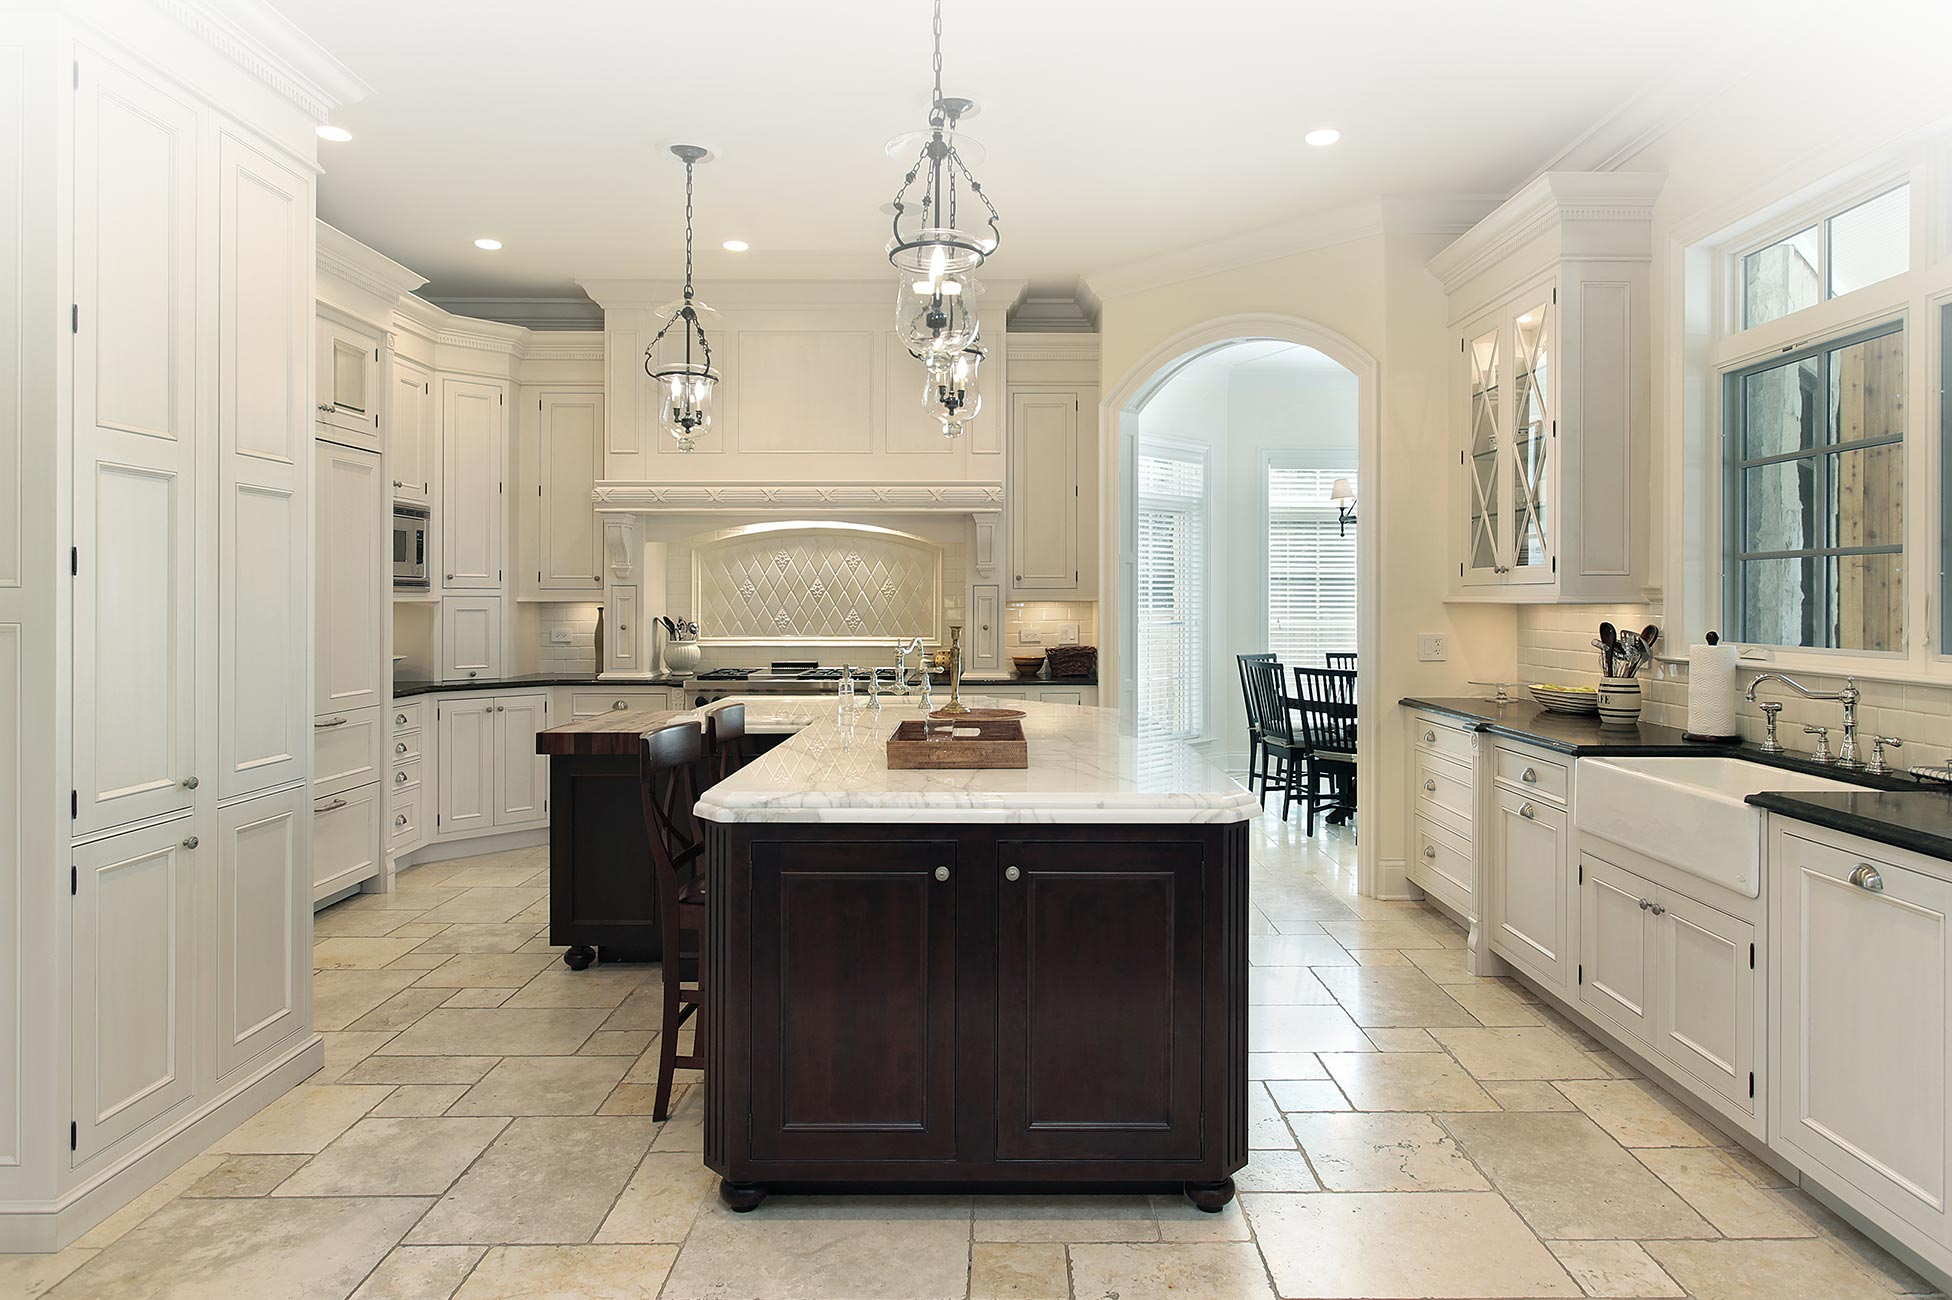 Southbrook Cabinetry   High Quality Designer Kitchens An Elegant Kitchen with Functionality